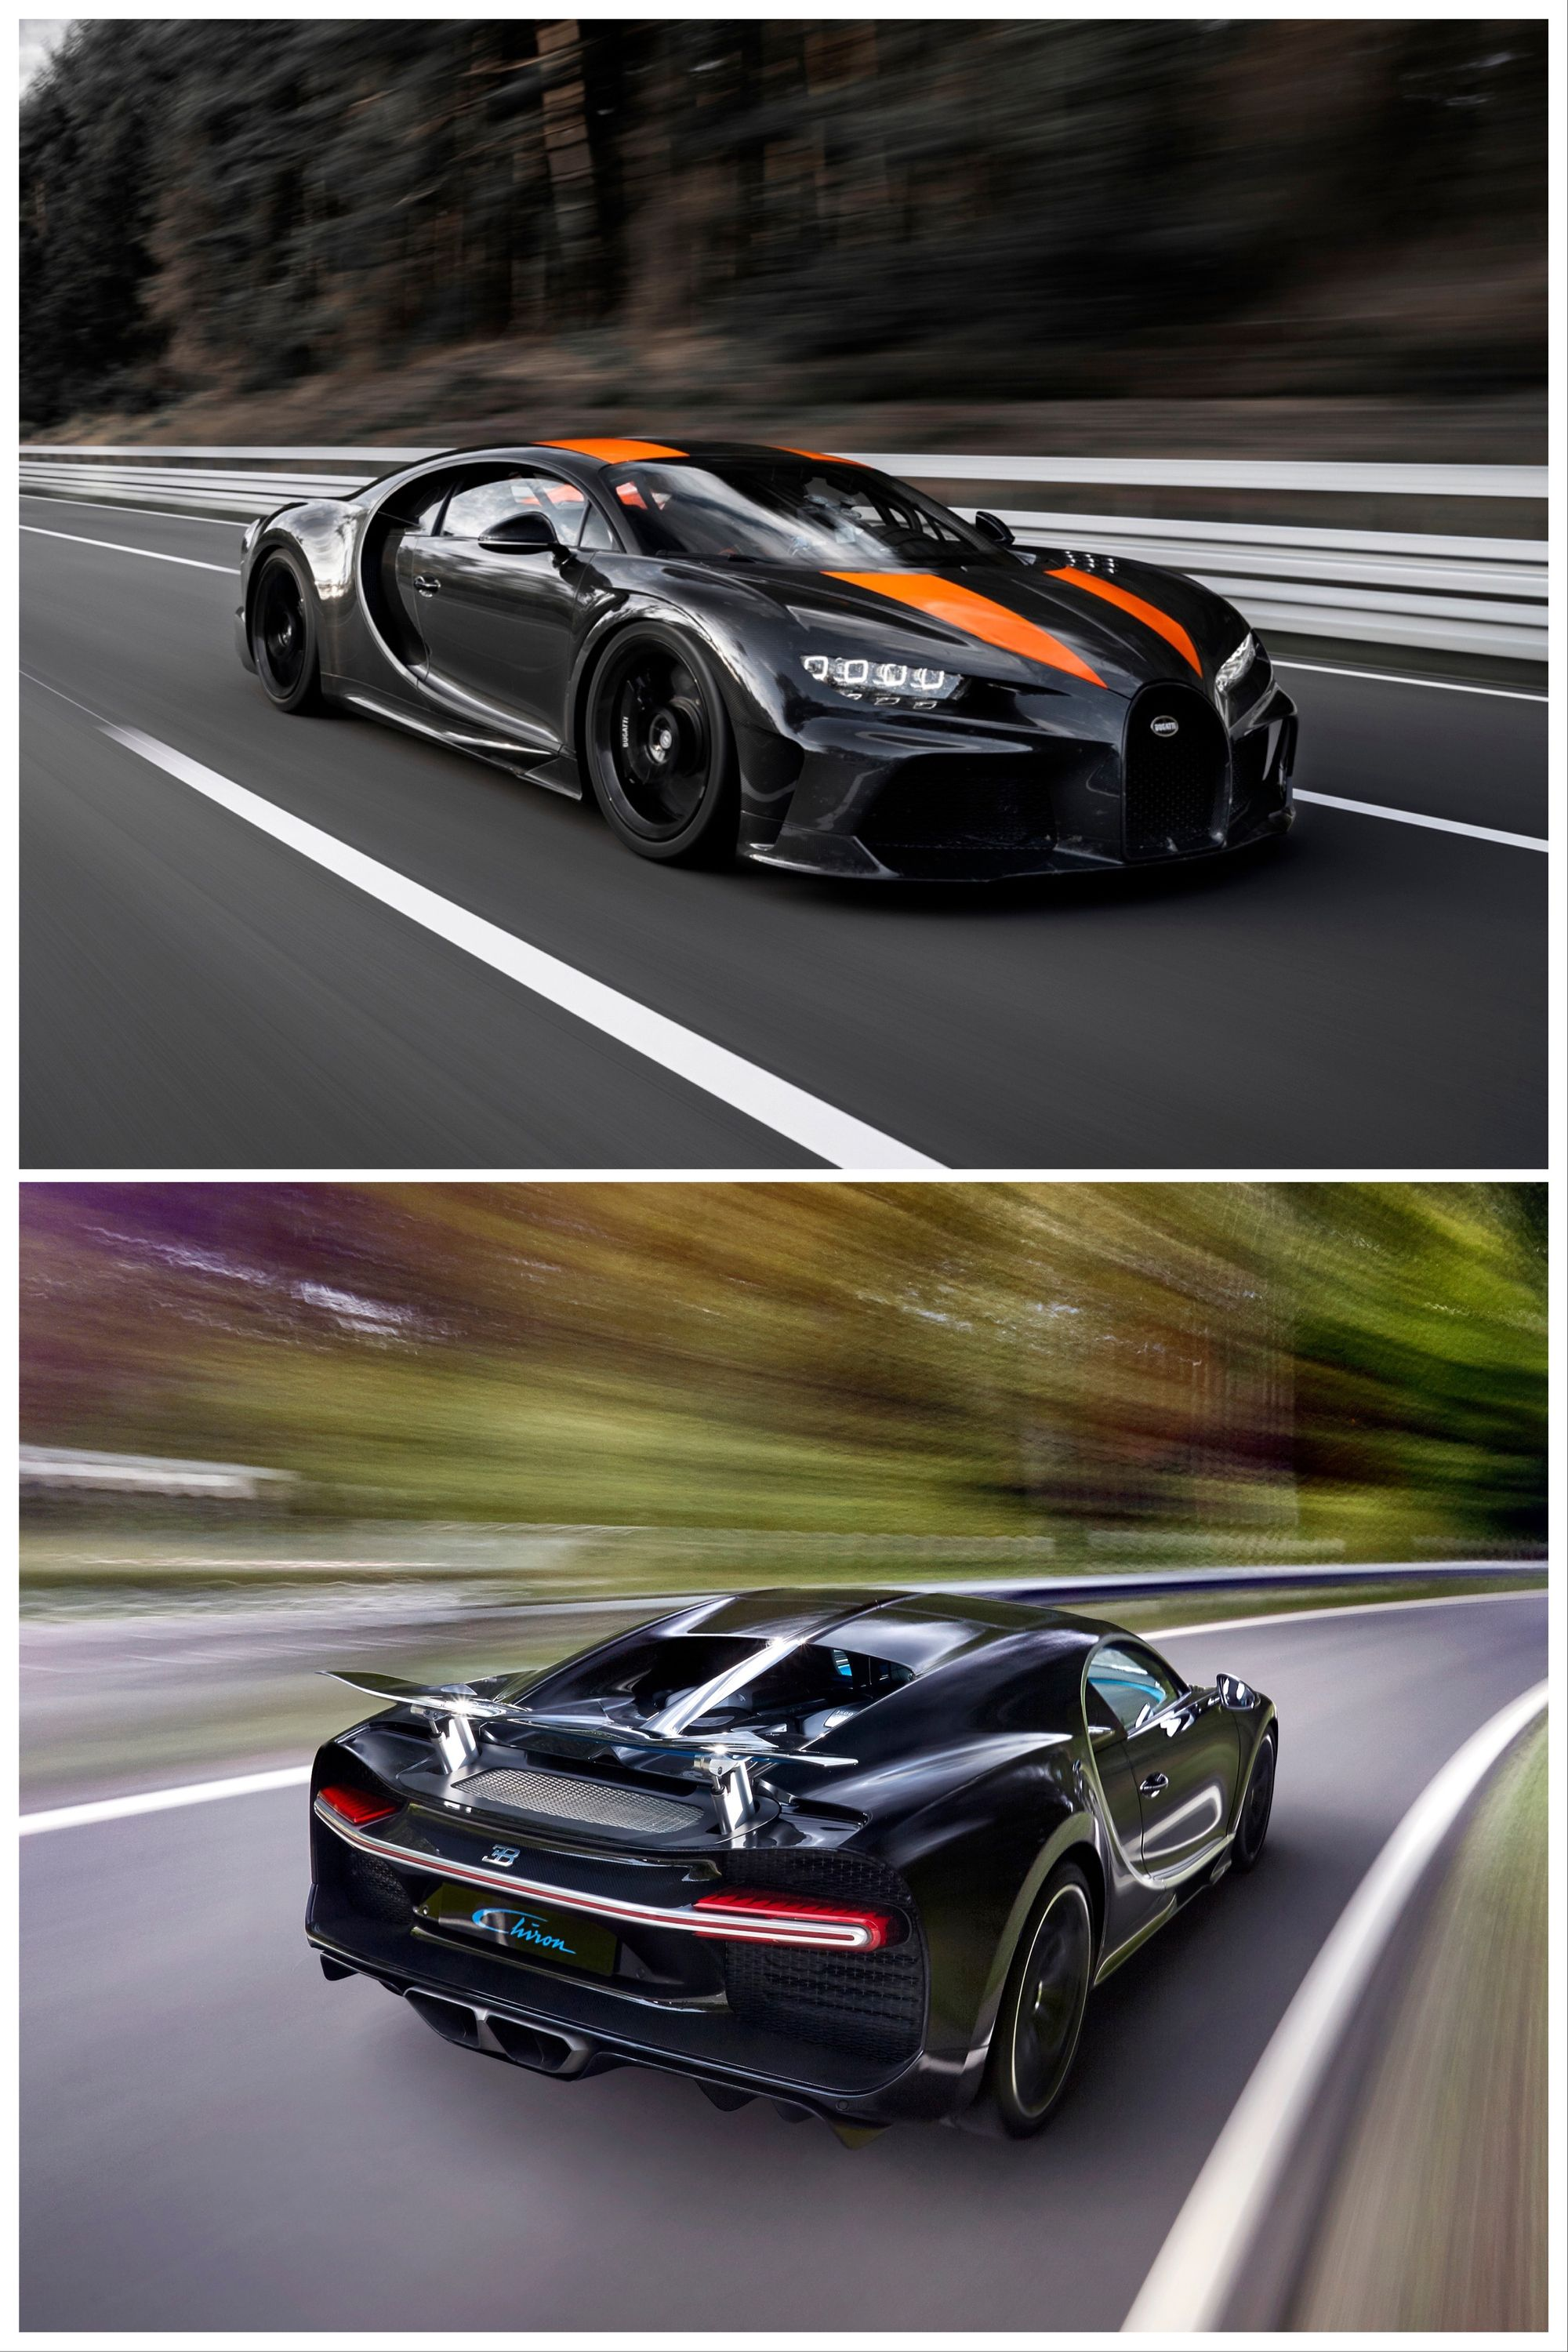 Fastest Cars In The World In 2020 Fast Cars Fastest Production Cars Bugatti Chiron Speed